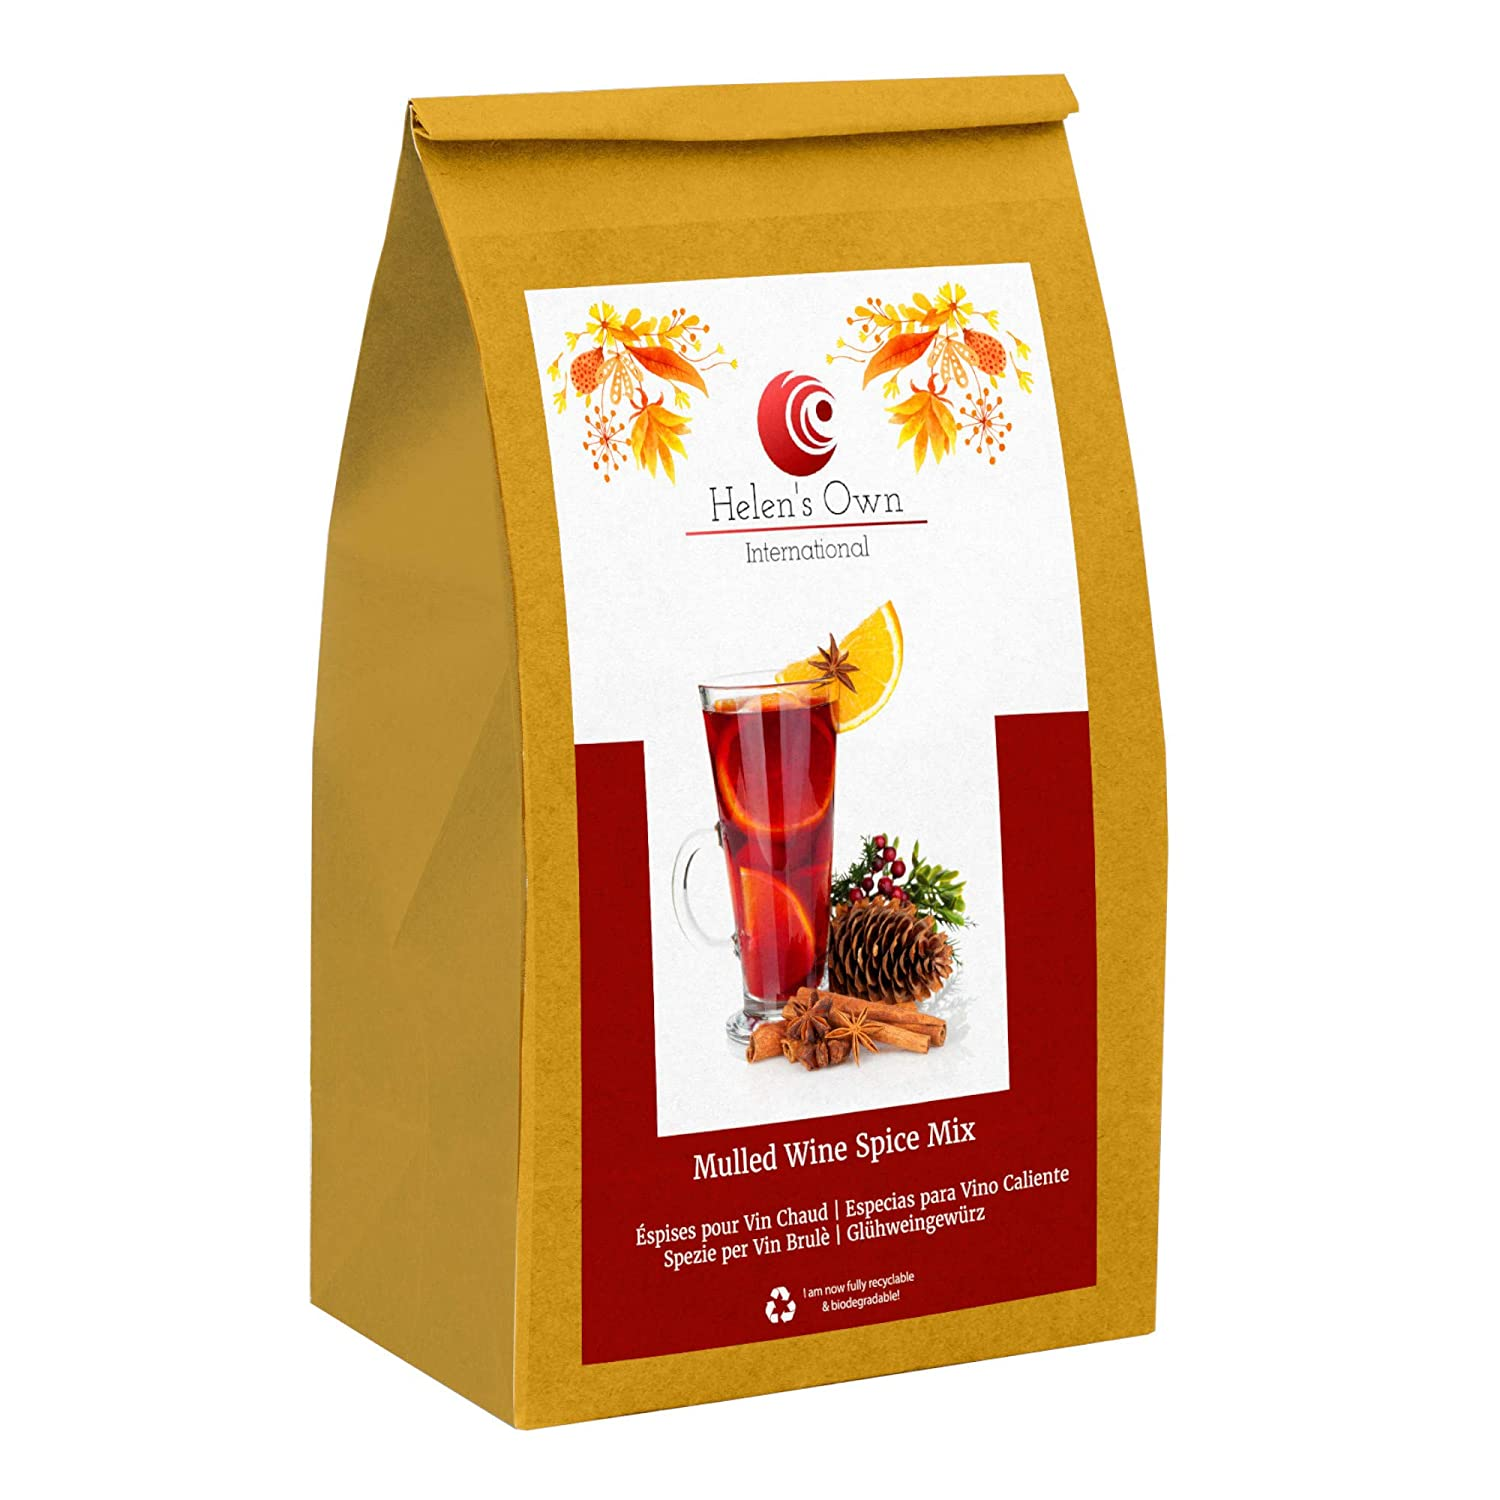 German Mulled Wine Spice Mix Gluhwein - Mulling Spices - 20 x 0.5Oz Sachets / 20 x 1.5g Sachets - Glühwein Gewürz by Meßmer - Sold by Helen's Own - with Full English Recipe Booklet